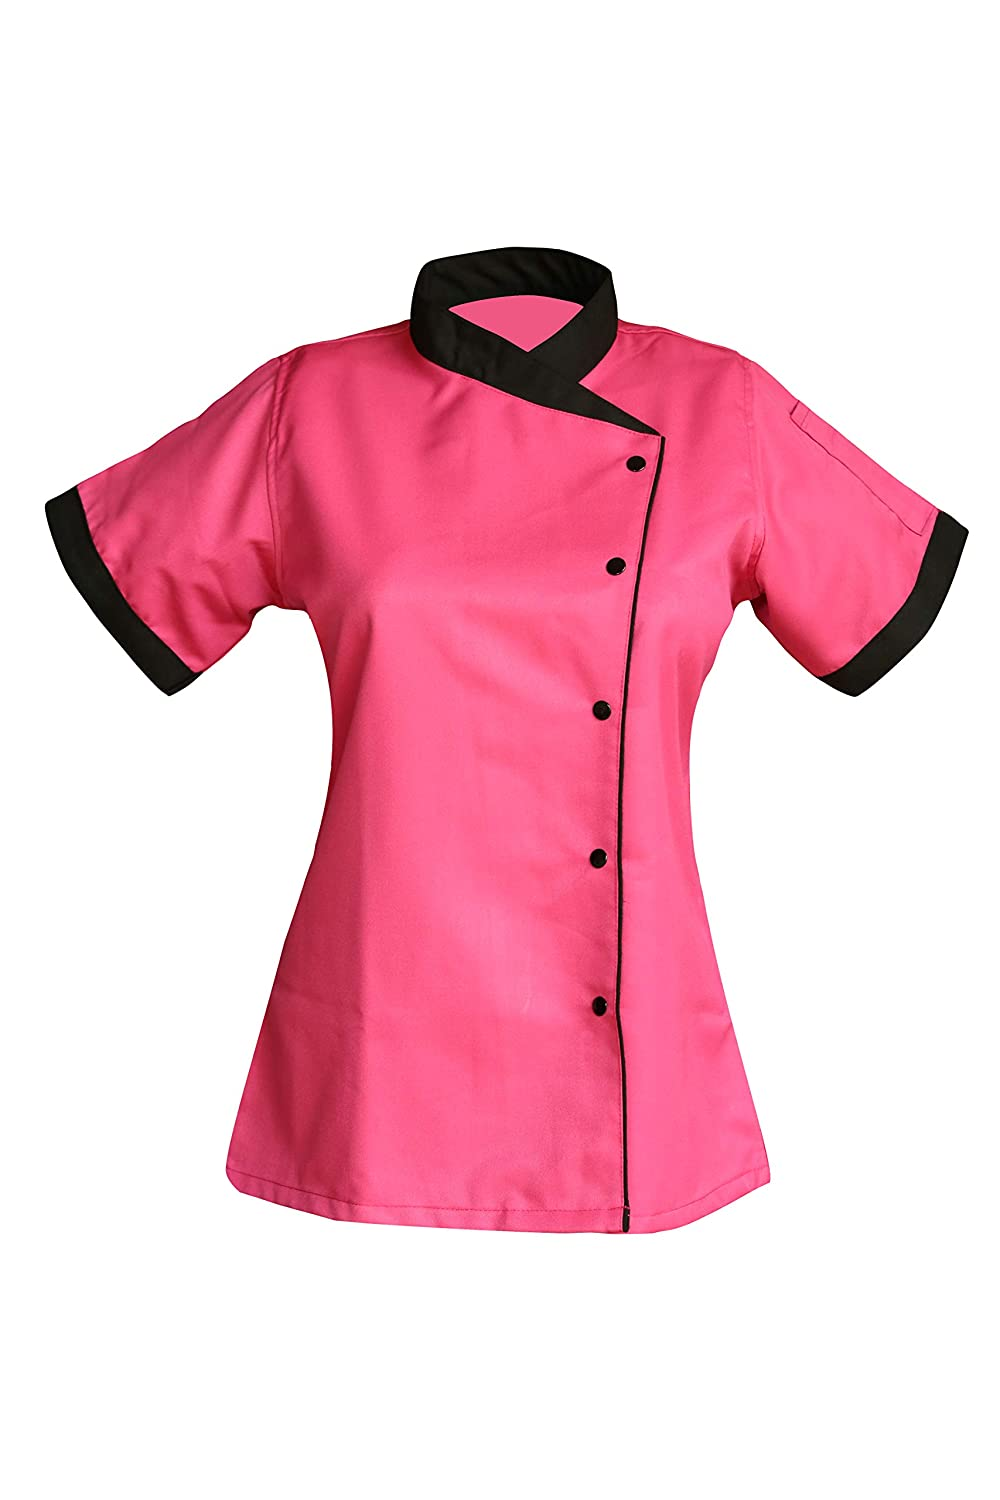 Uniformale Short Sleeves Only Ladies Women Chef Coat Jacket